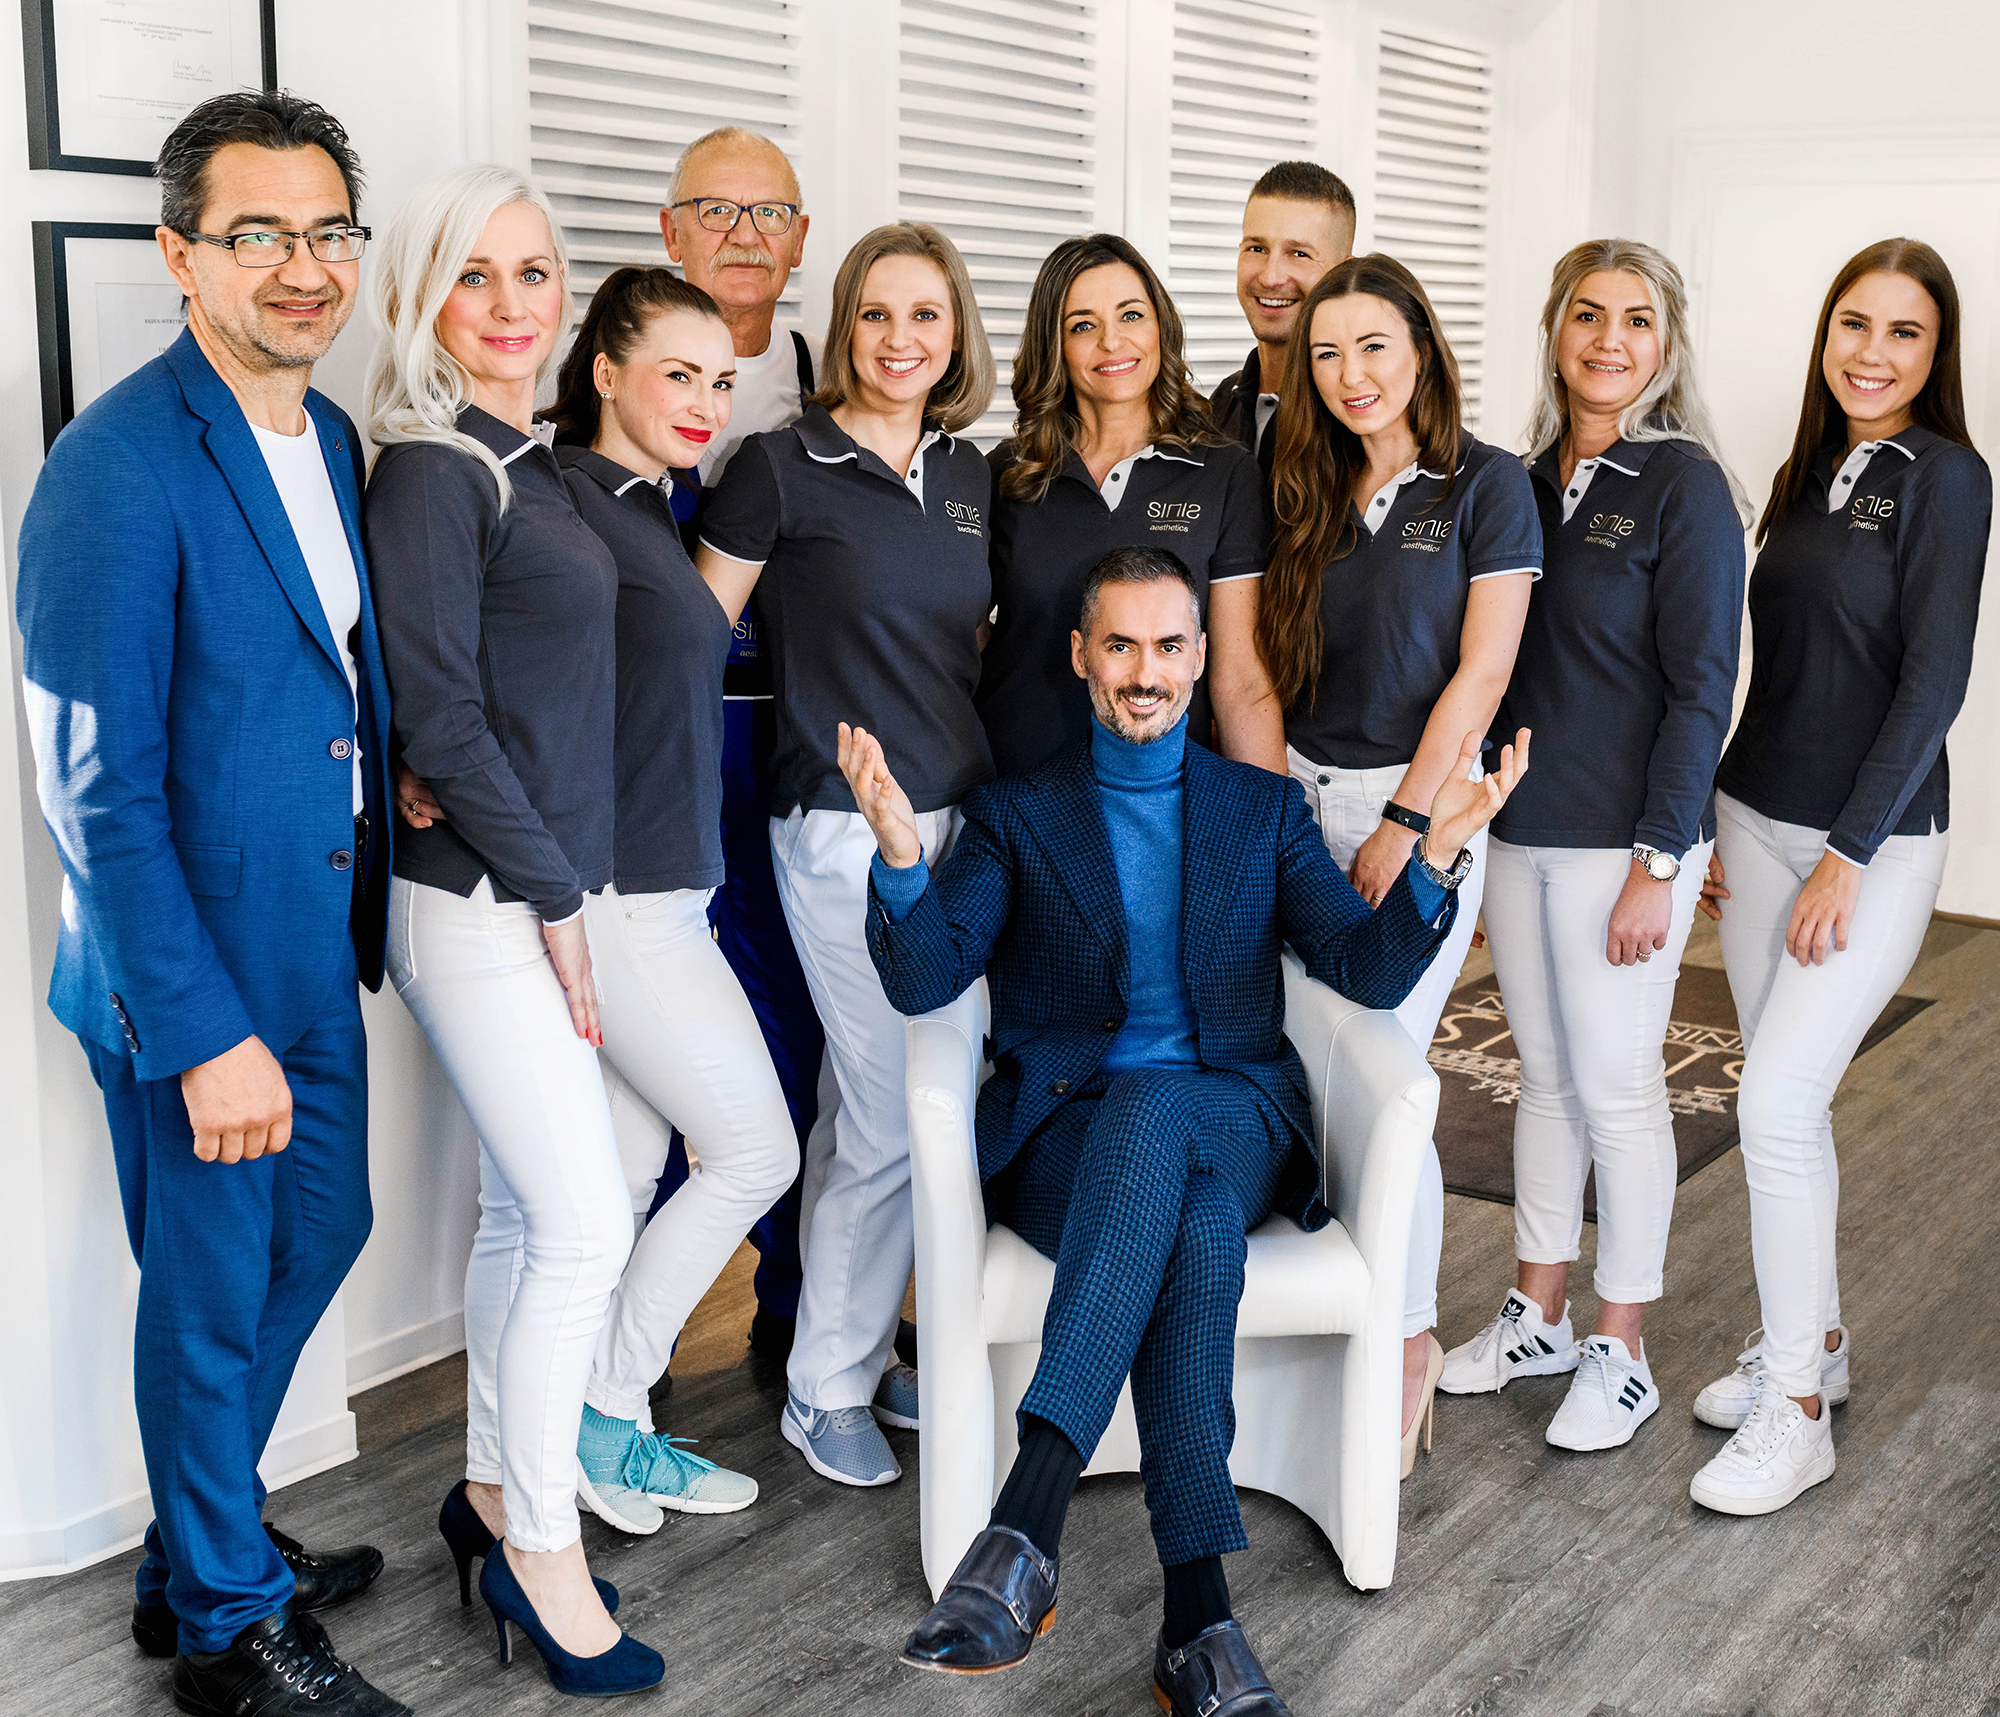 https://www.sinis-aesthetics.de/wp-content/uploads/2020/01/Team-Picture.jpg